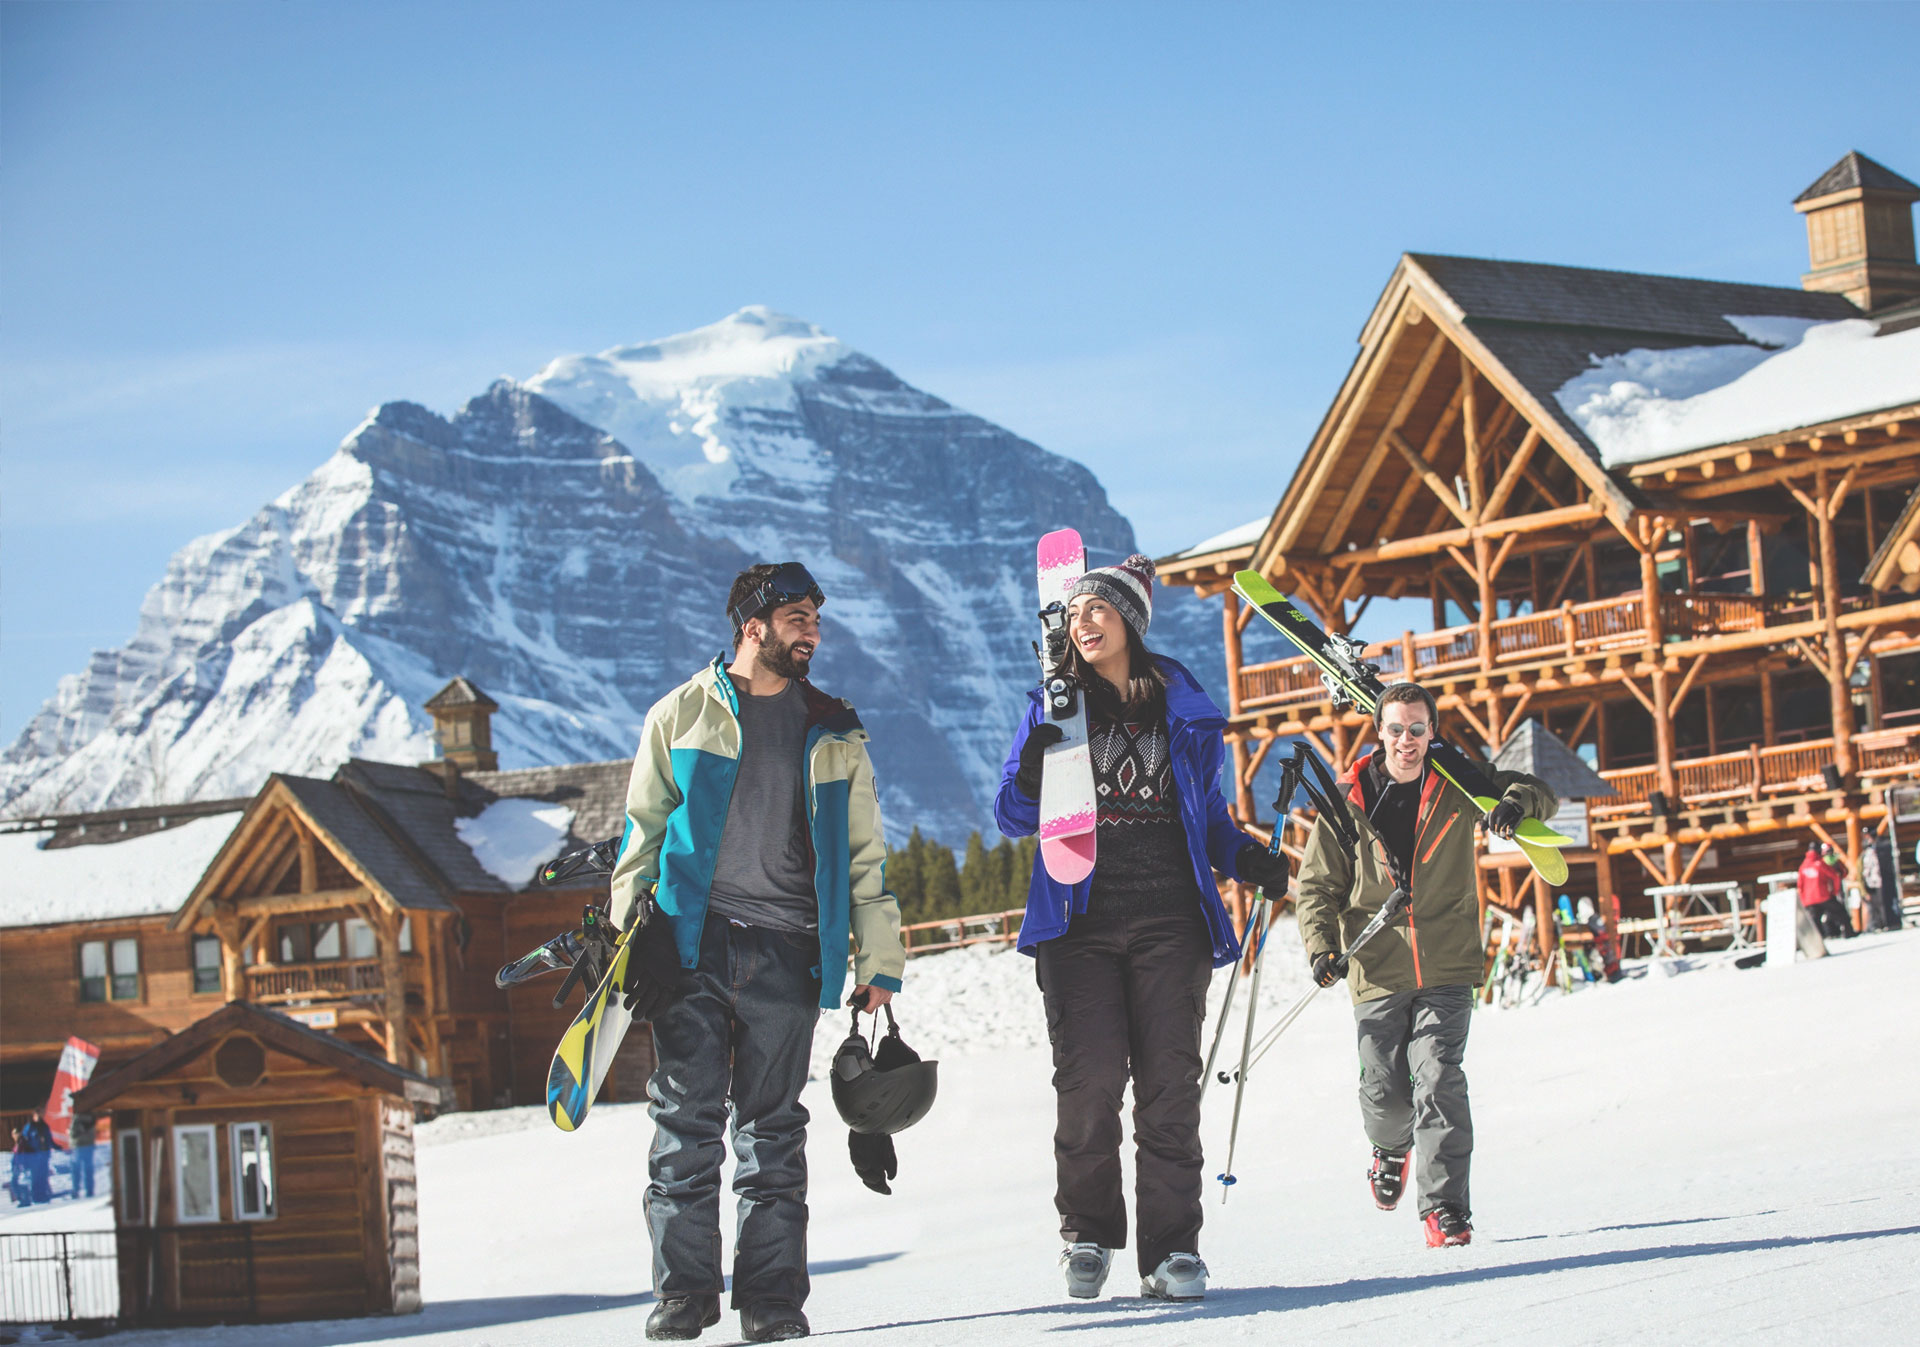 Lake Louise Ski Resort is perfect for all skill levels (Photo credit: Travel Alberta/Noel Hendrickson).